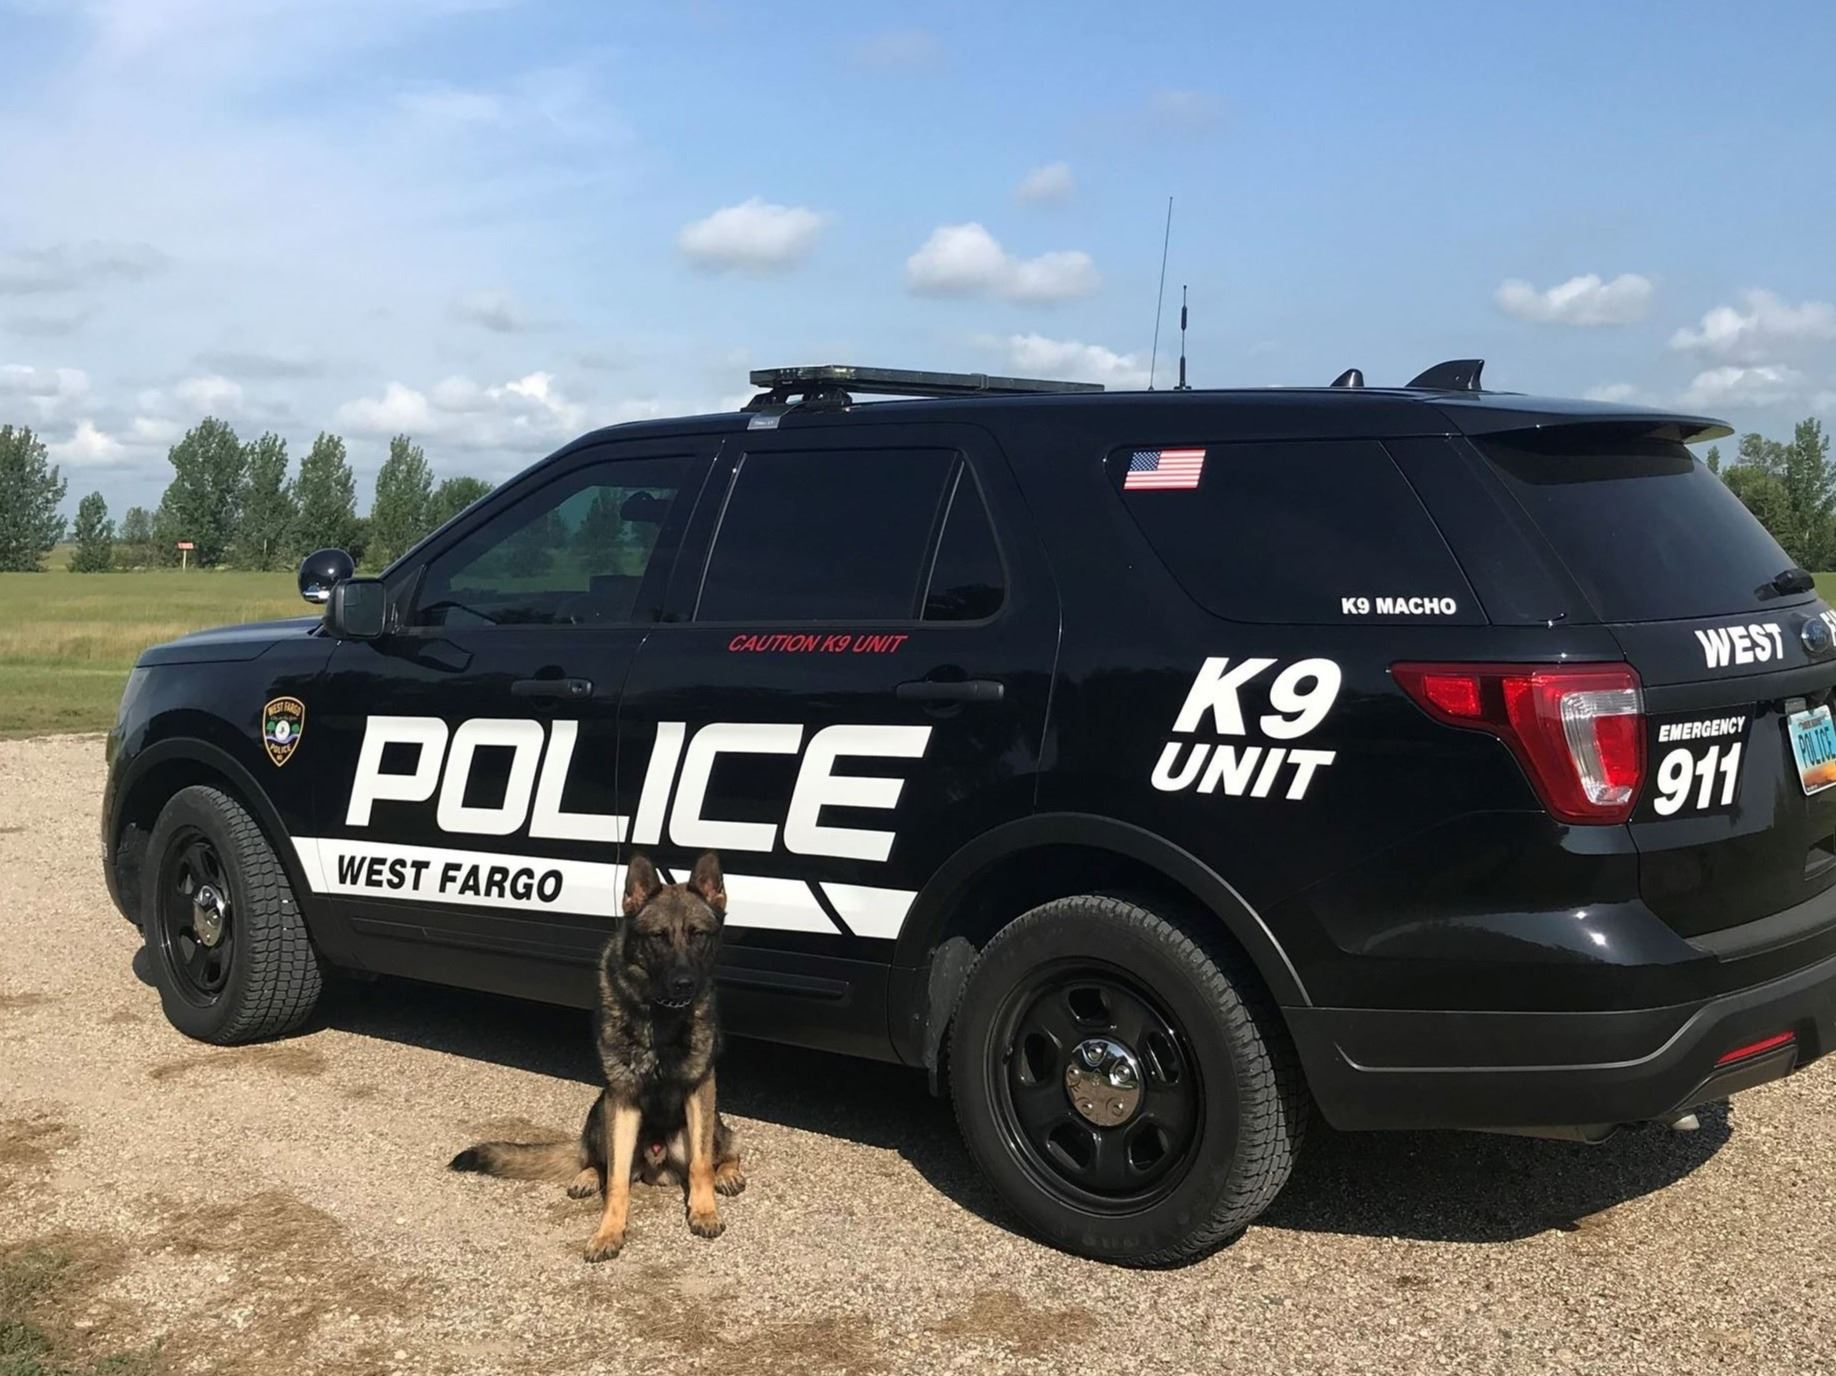 West Fargo Police Department K9 Macho poses in front of K9 unit vehicle